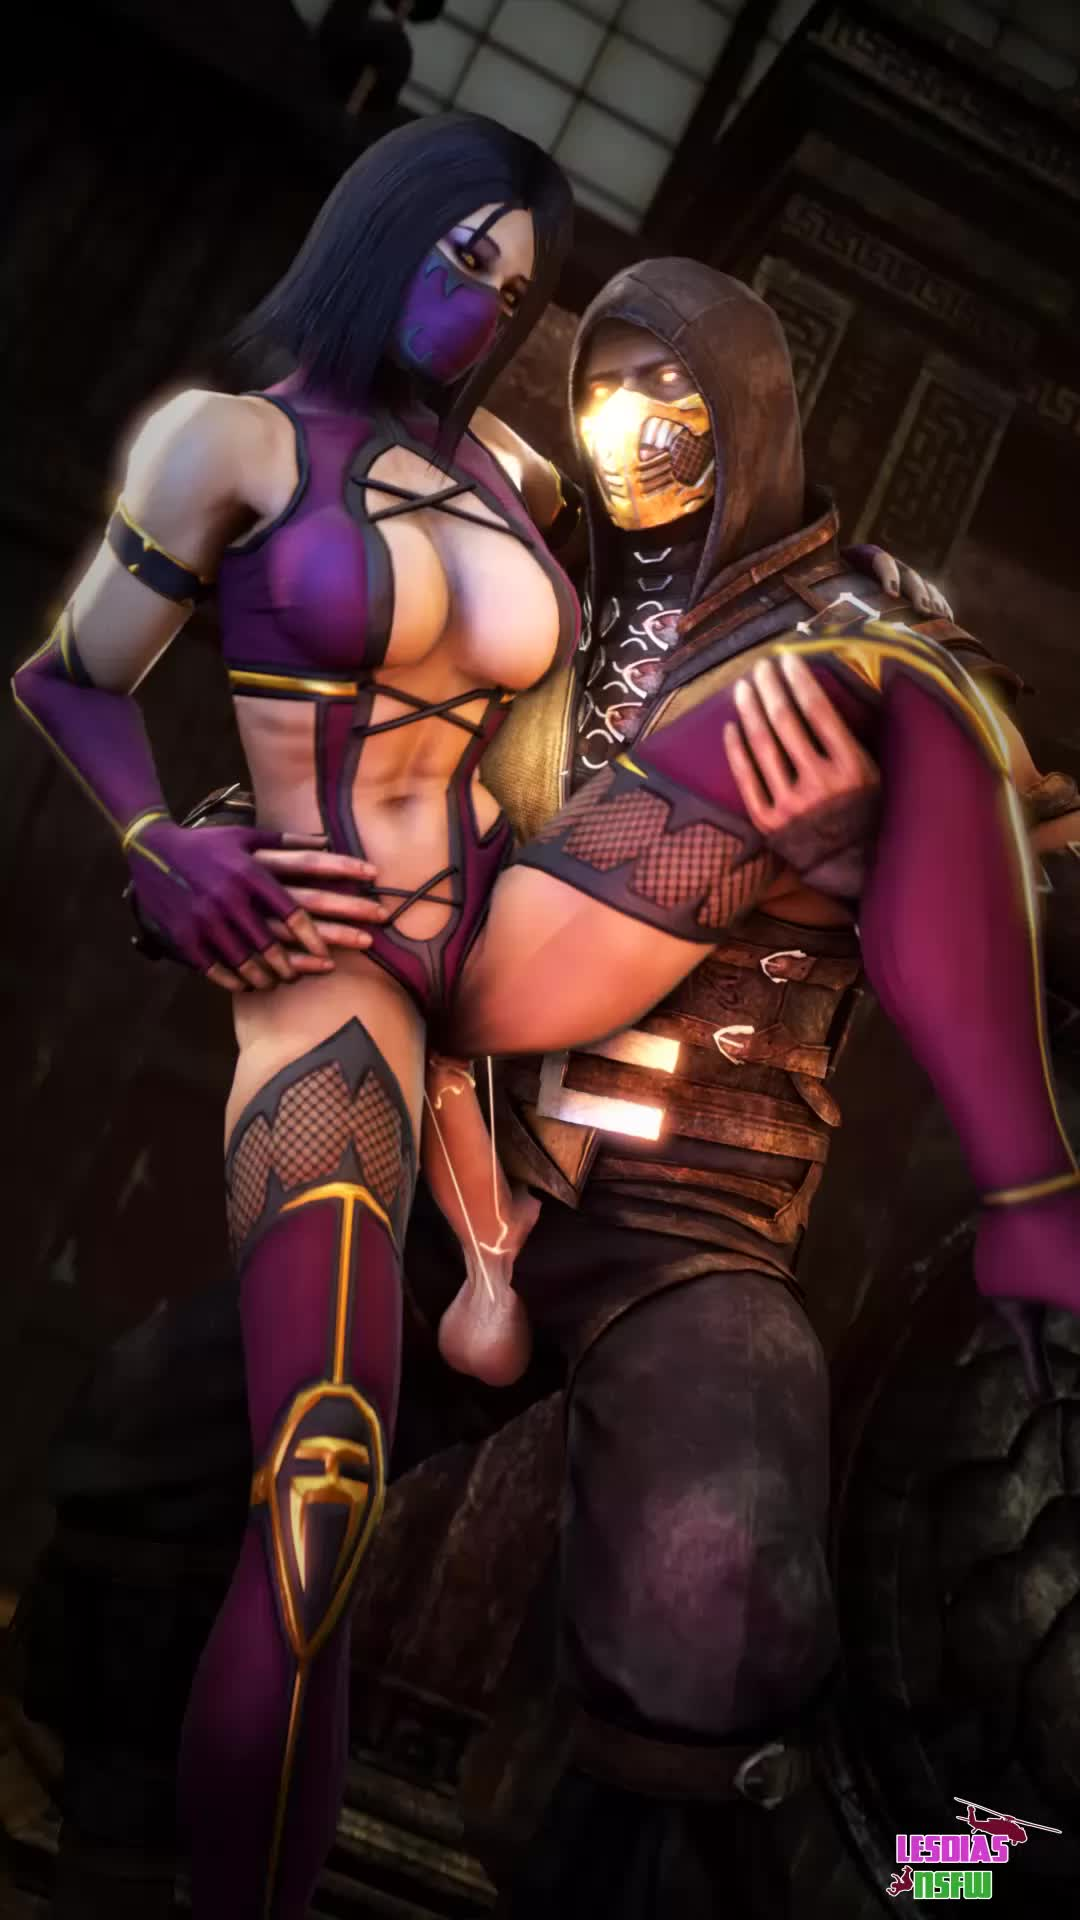 Animated Lesdias Mileena Mortal_Kombat Mortal_Kombat_X Scorpion Source_Filmmaker // 1080x1920 // 4.3MB // webm